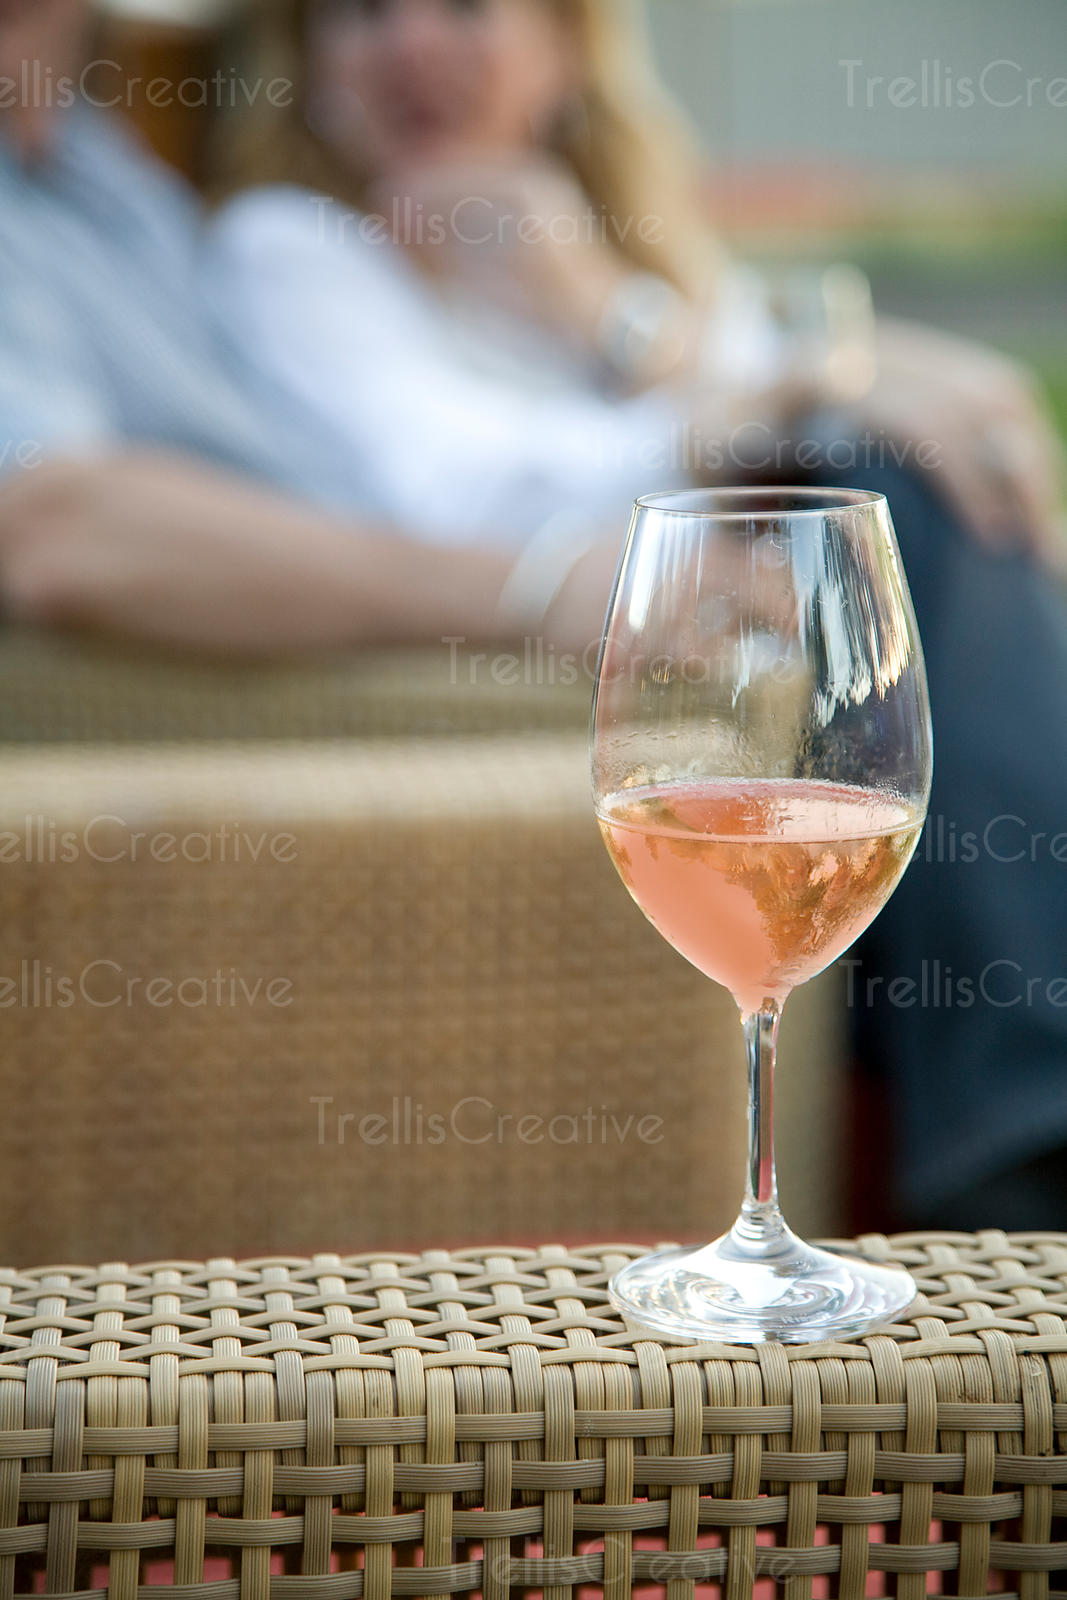 glass of rose wine on rattan chair with couple in background